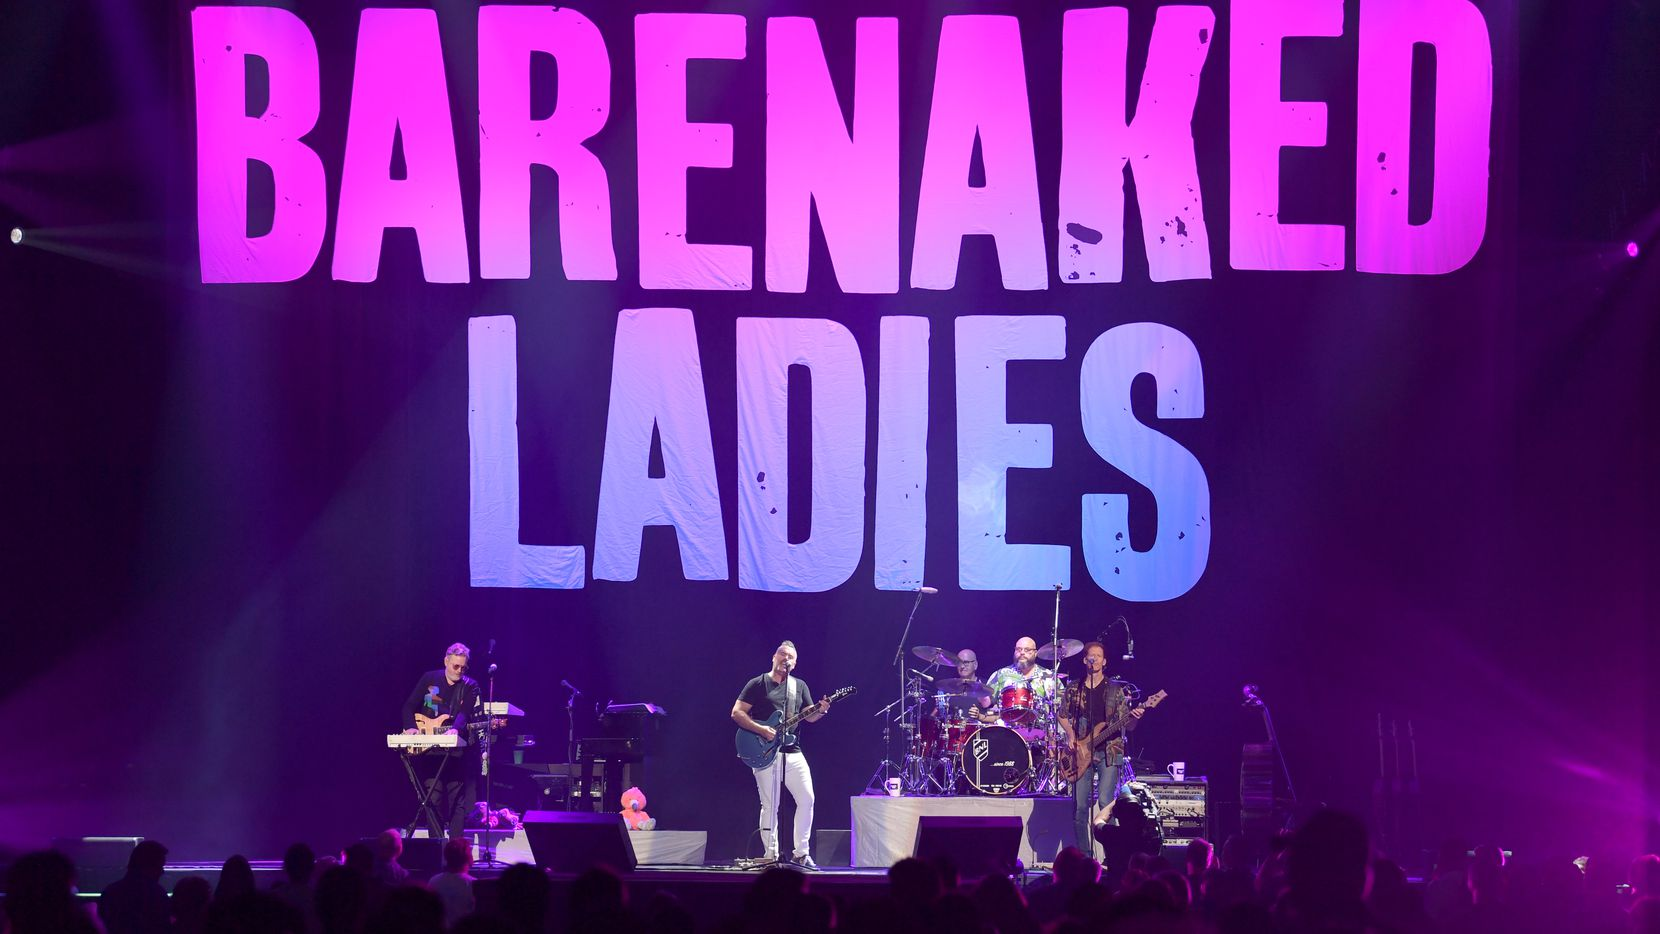 Kevin Hearn, Ed Robertson, Tyler Stewart and Jim Creeggan of the Barenaked Ladies perform at Bridgestone Arena on Sept. 7, 2019, in Nashville.